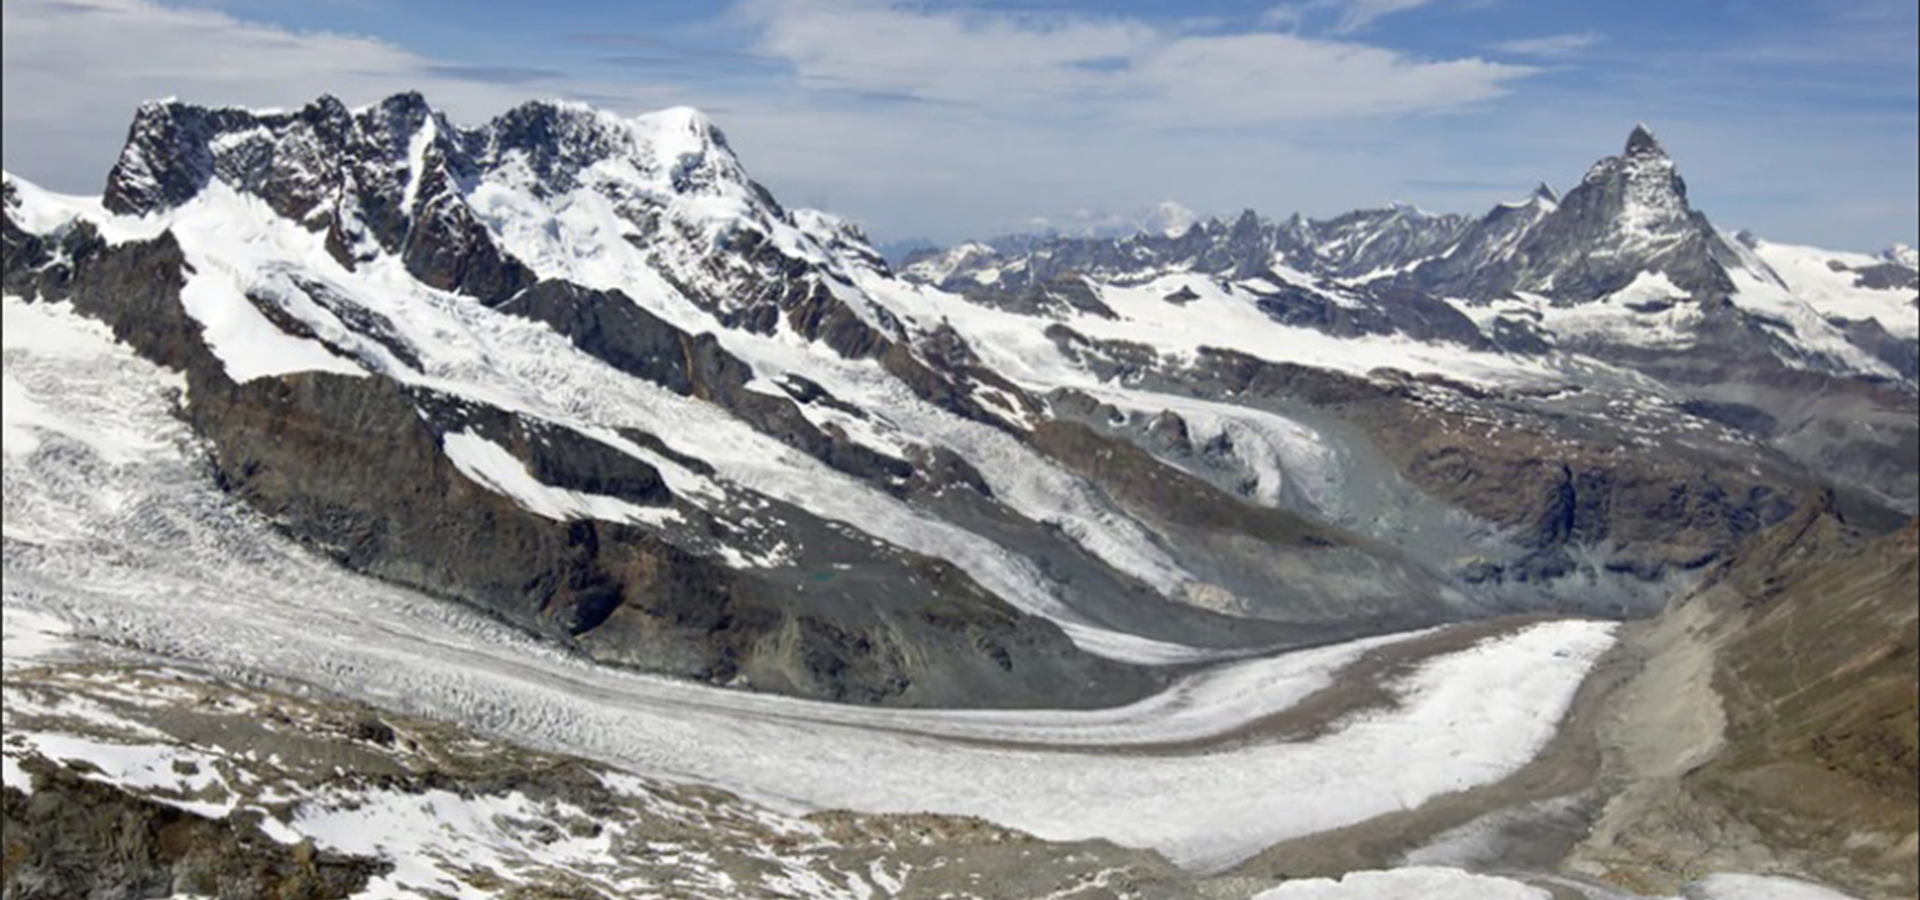 The Grenz glacier stretching away to the left in this photo Keystone Alessandro Della Bella